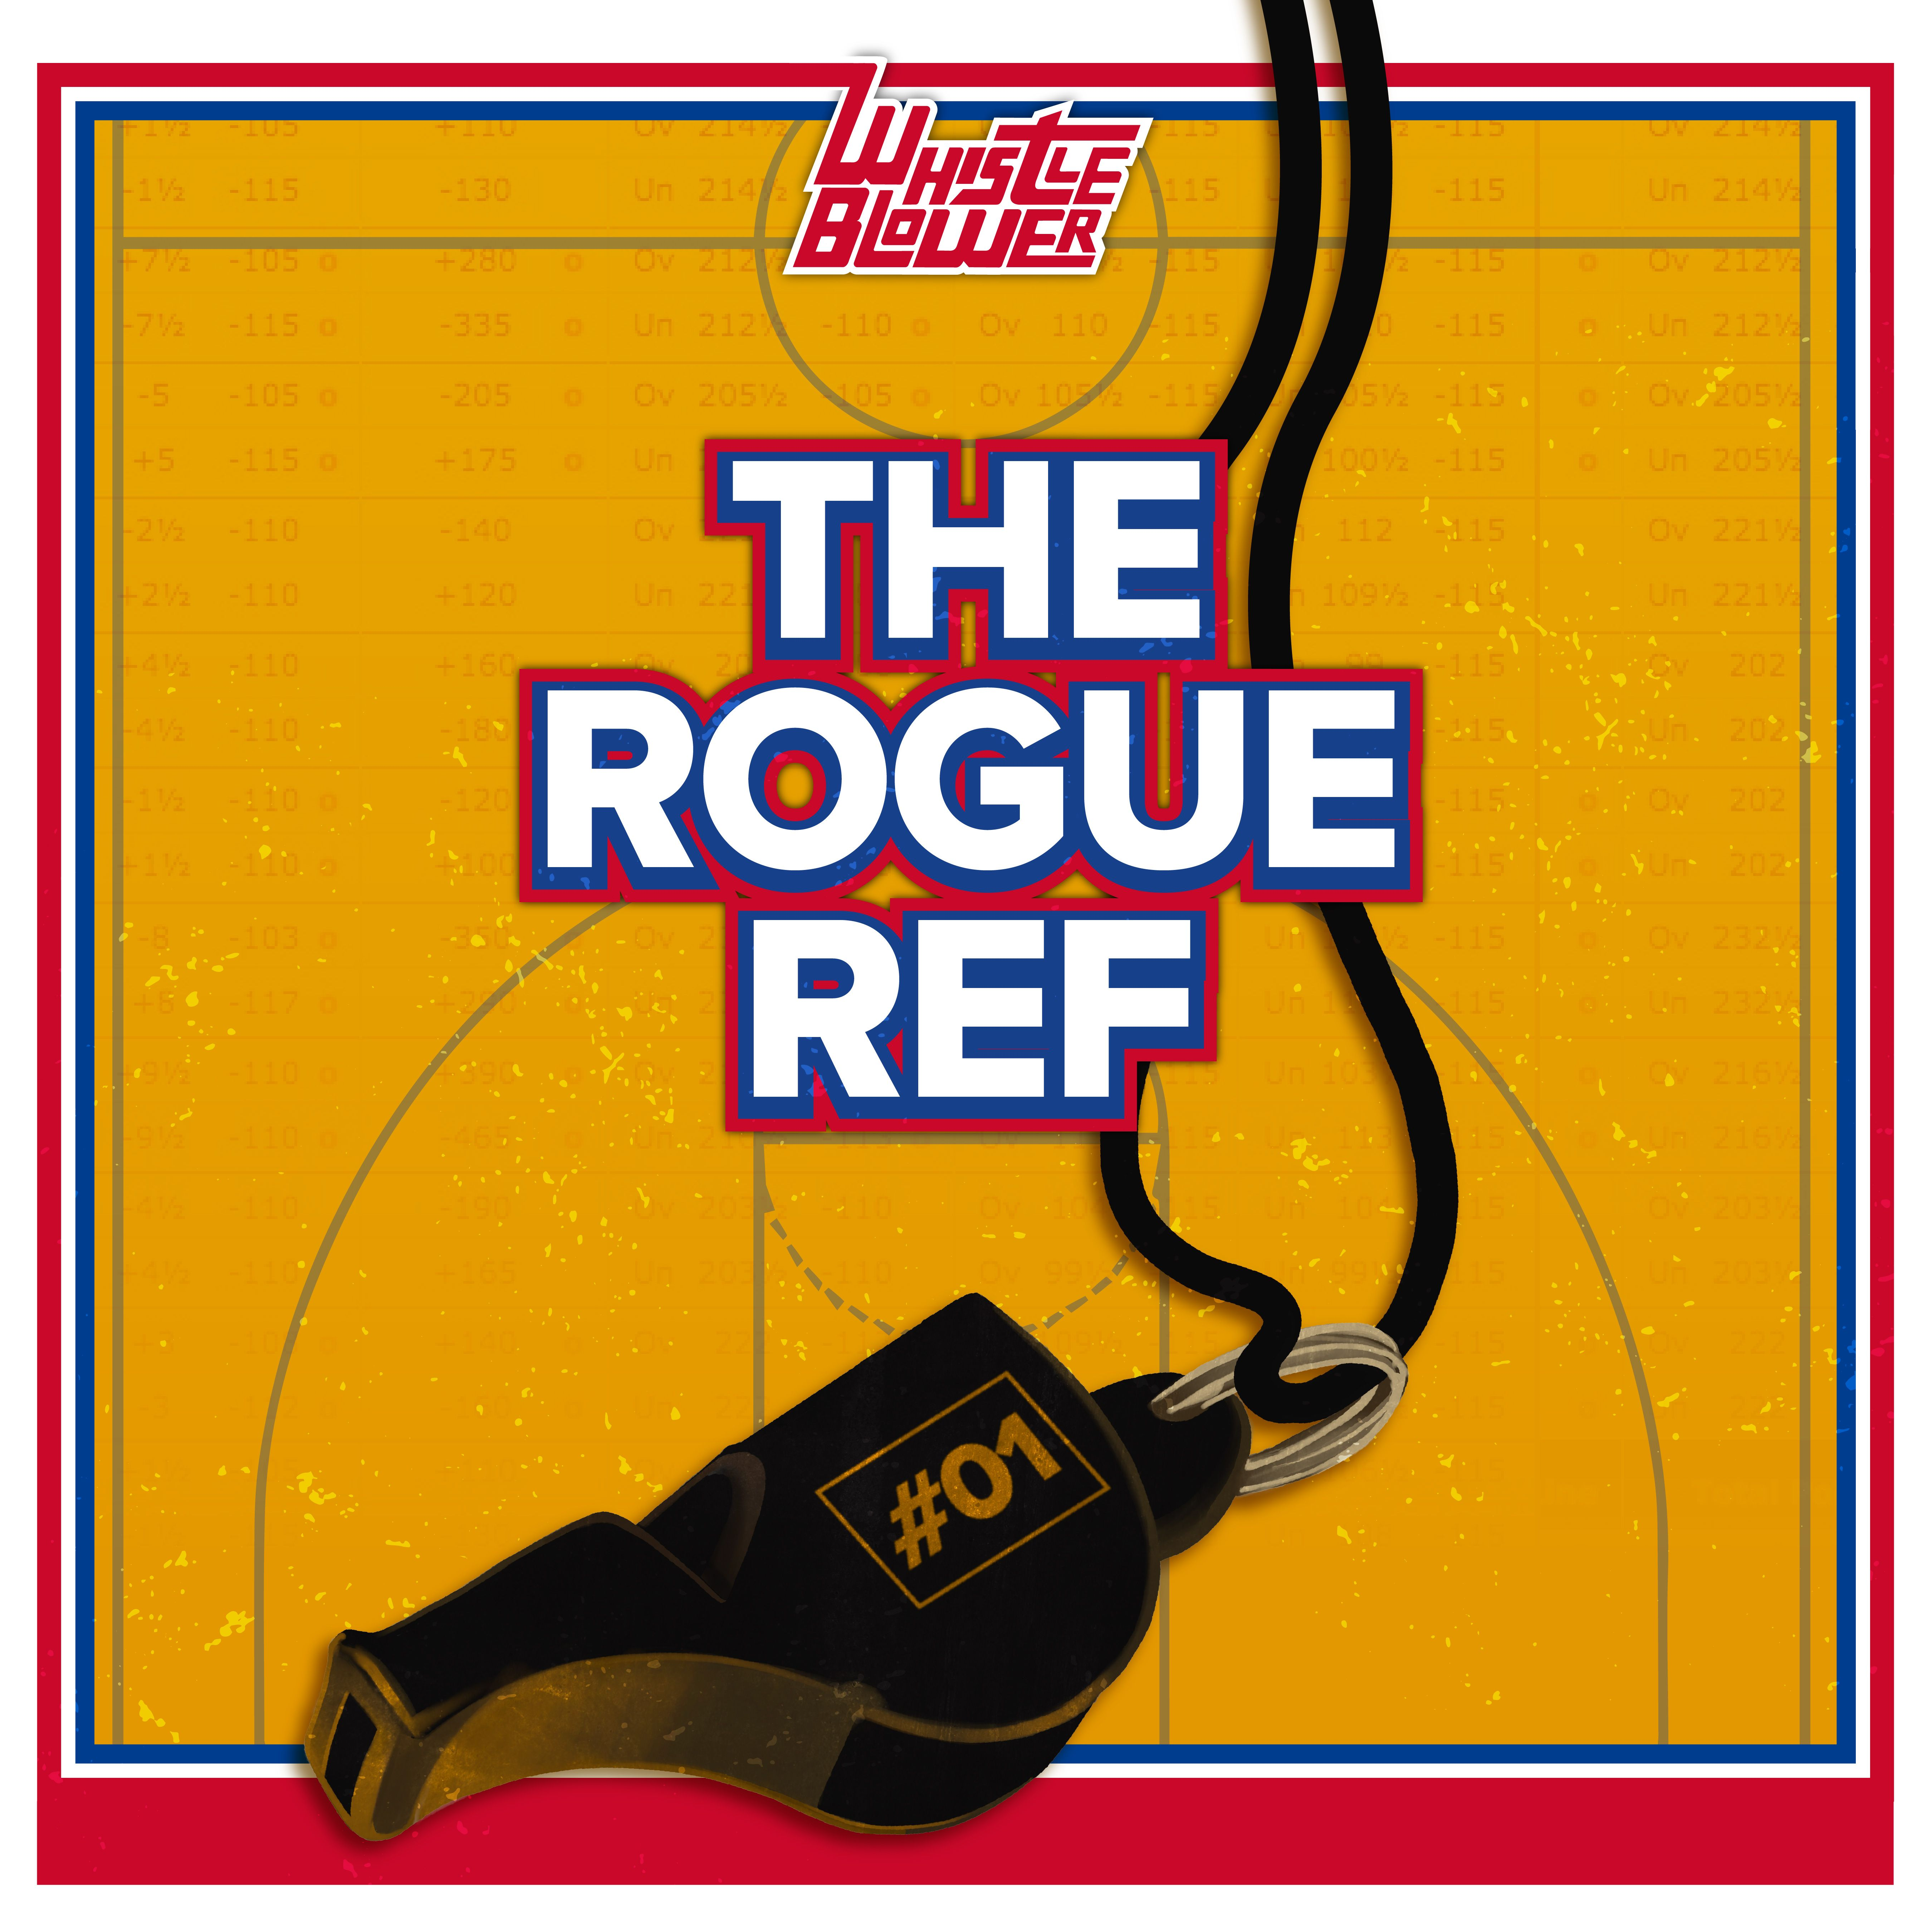 The Rogue Ref